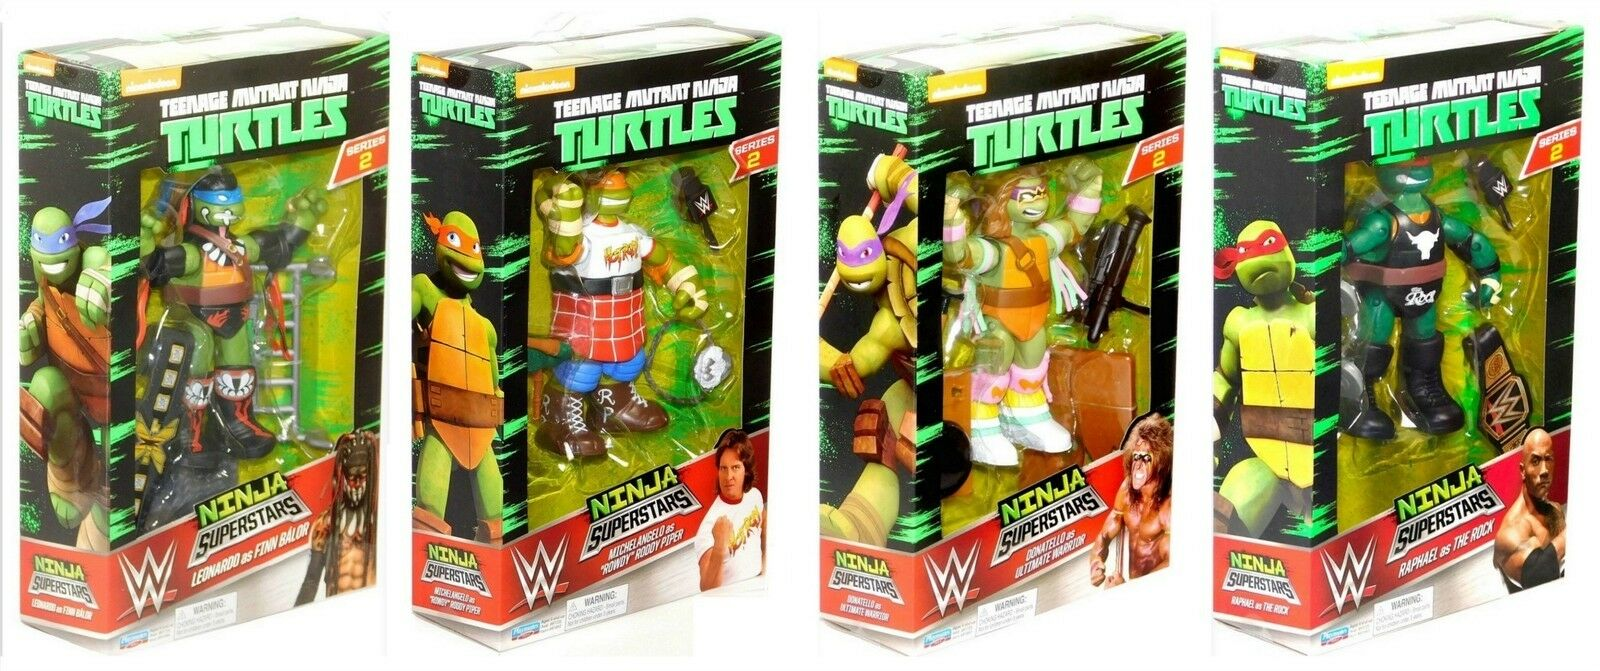 WWE Ninja Superstars Teenage Mutant Turtles Series 2 Complete 4 Figure Set